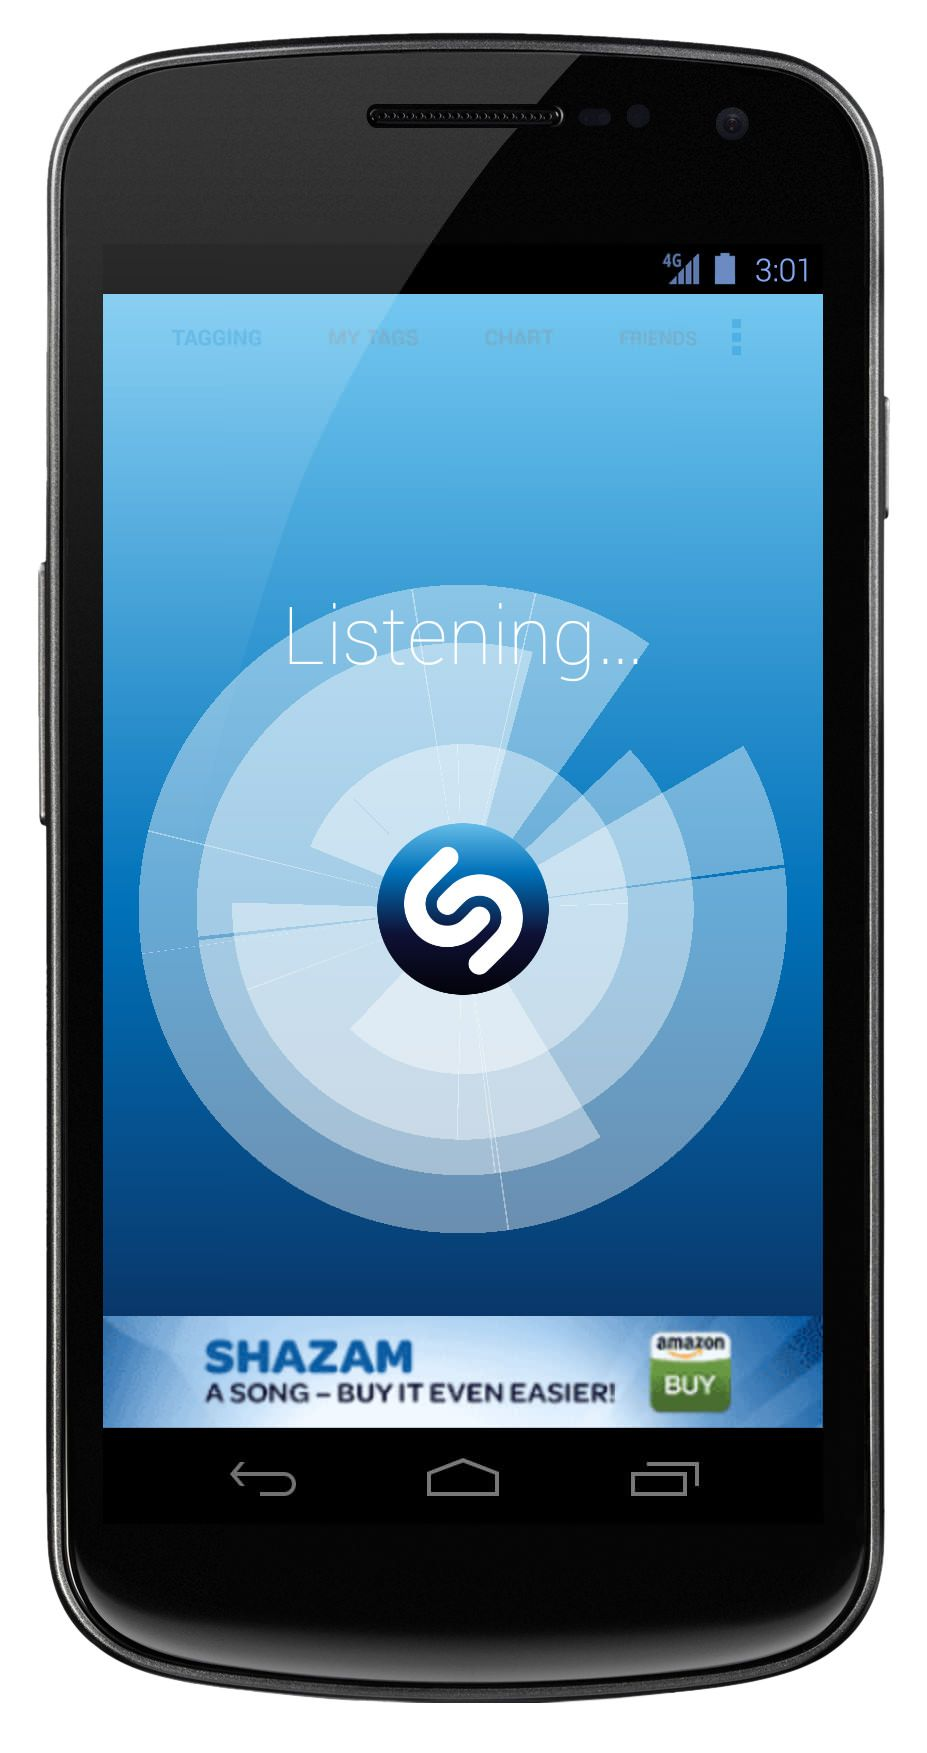 Shazam on Android now has lightningfast speed, with